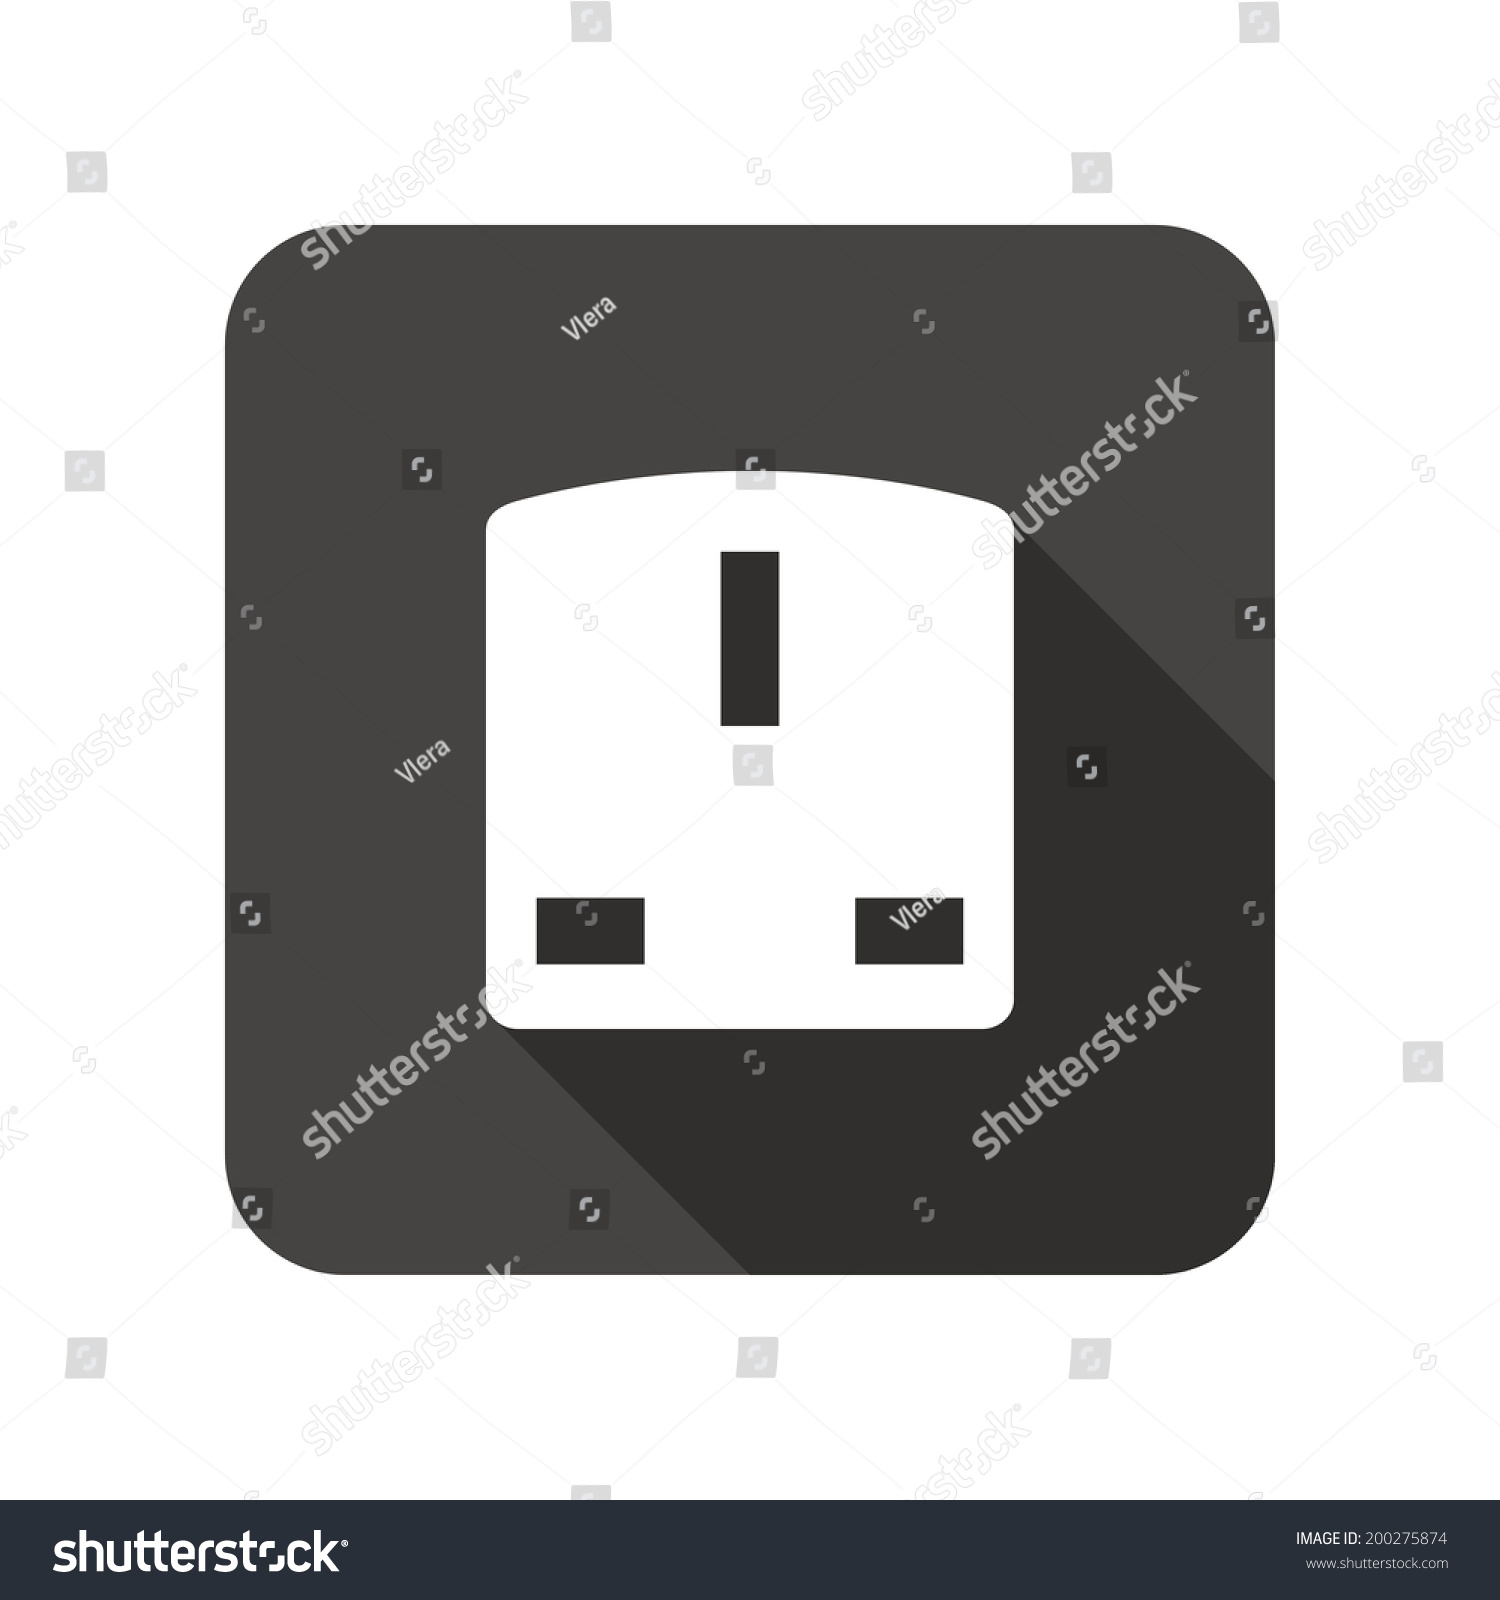 Plug Power Stock Quote: Electric Plug Sign Power Energy Symbol Stock Vector